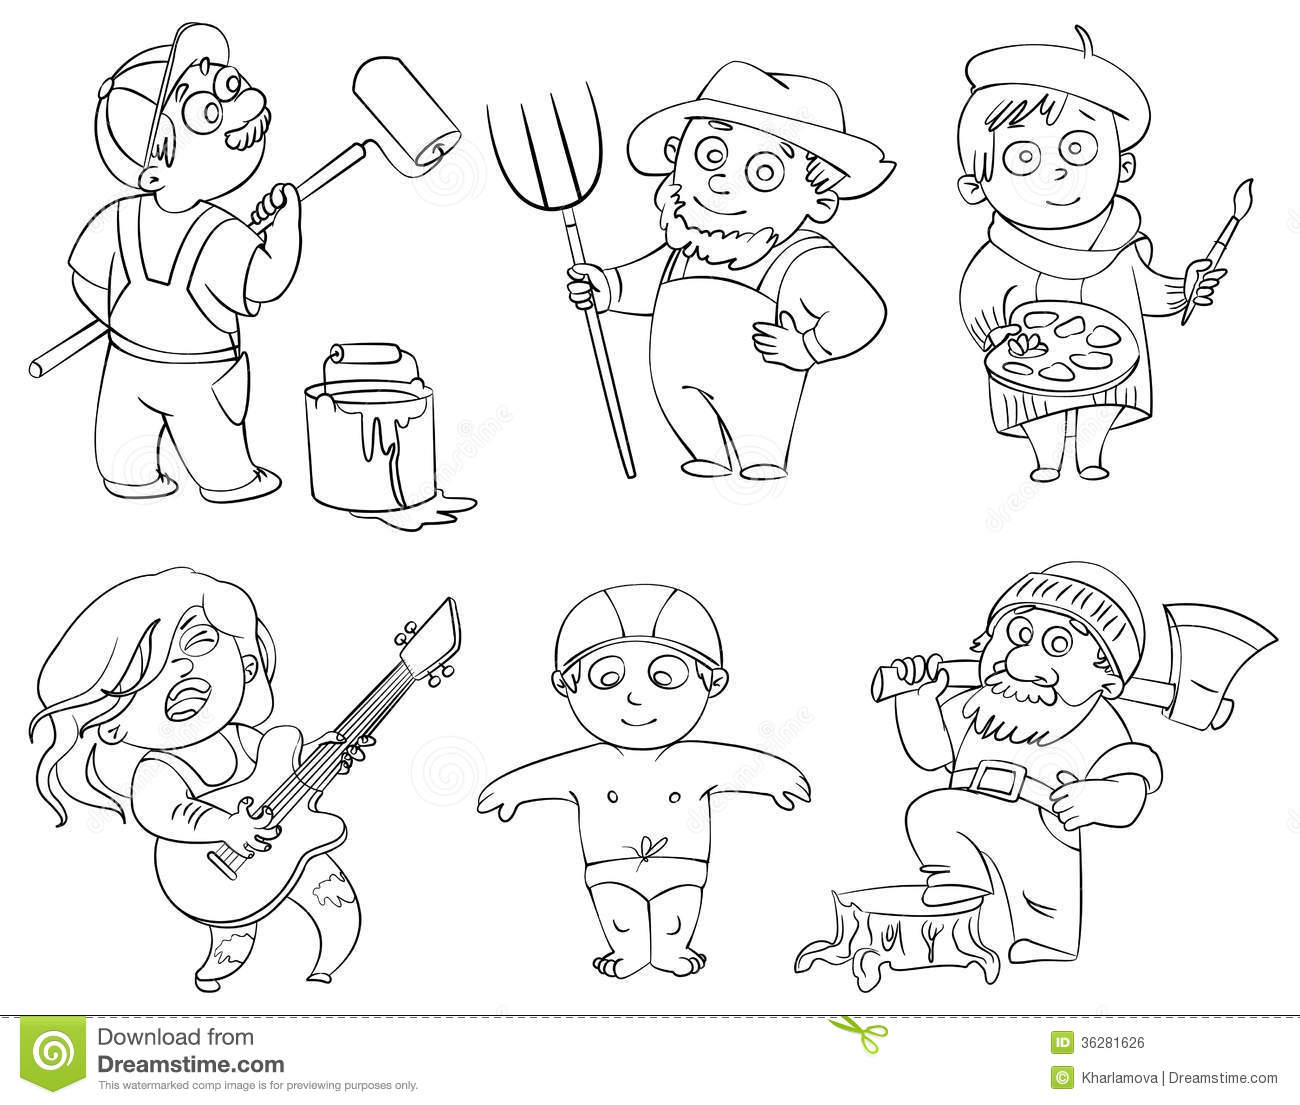 jobs and occupations coloring pages - photo#10